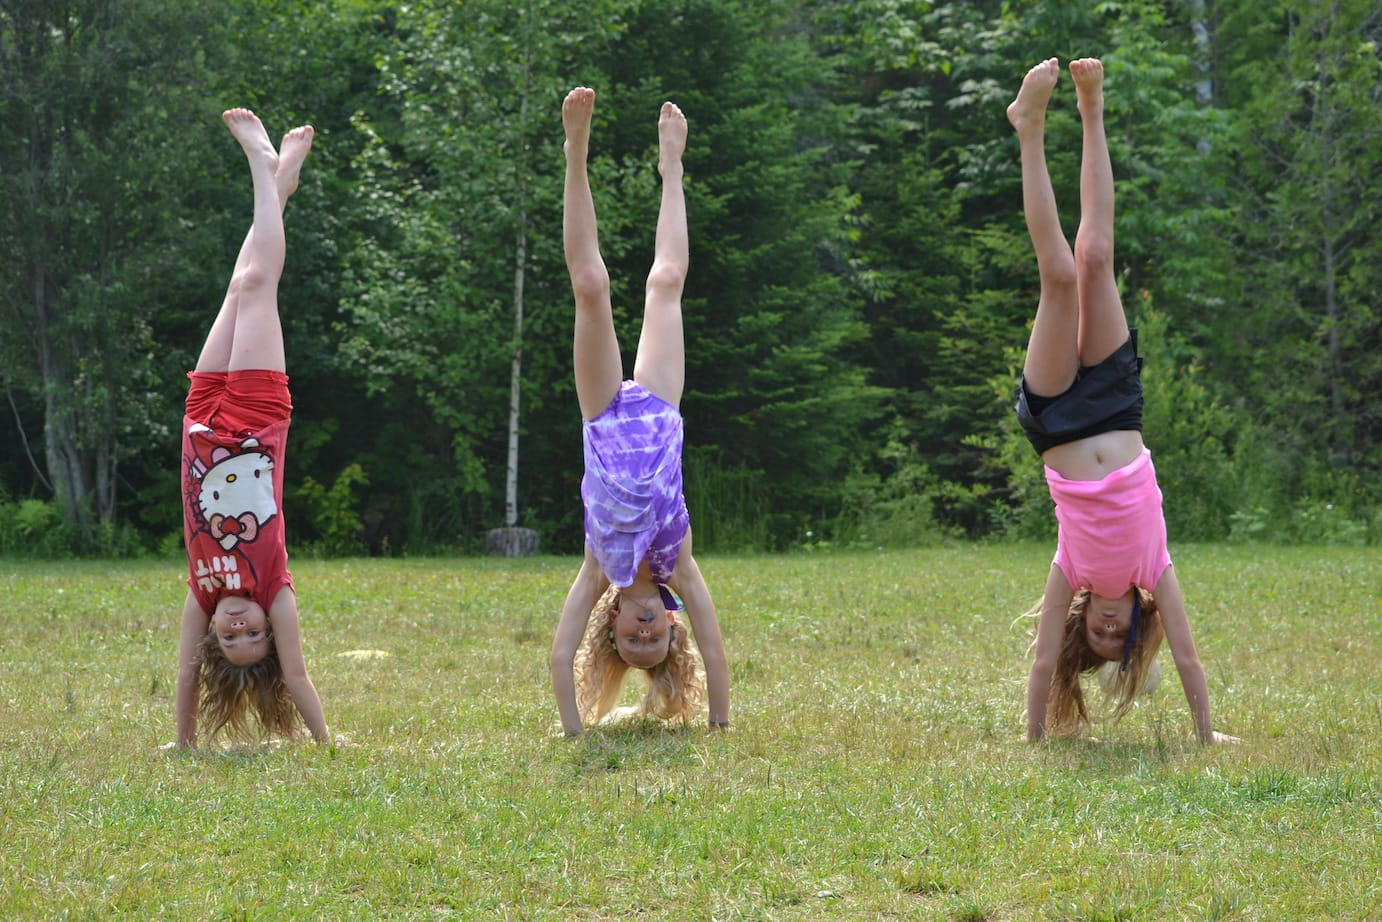 Handstands on the play field